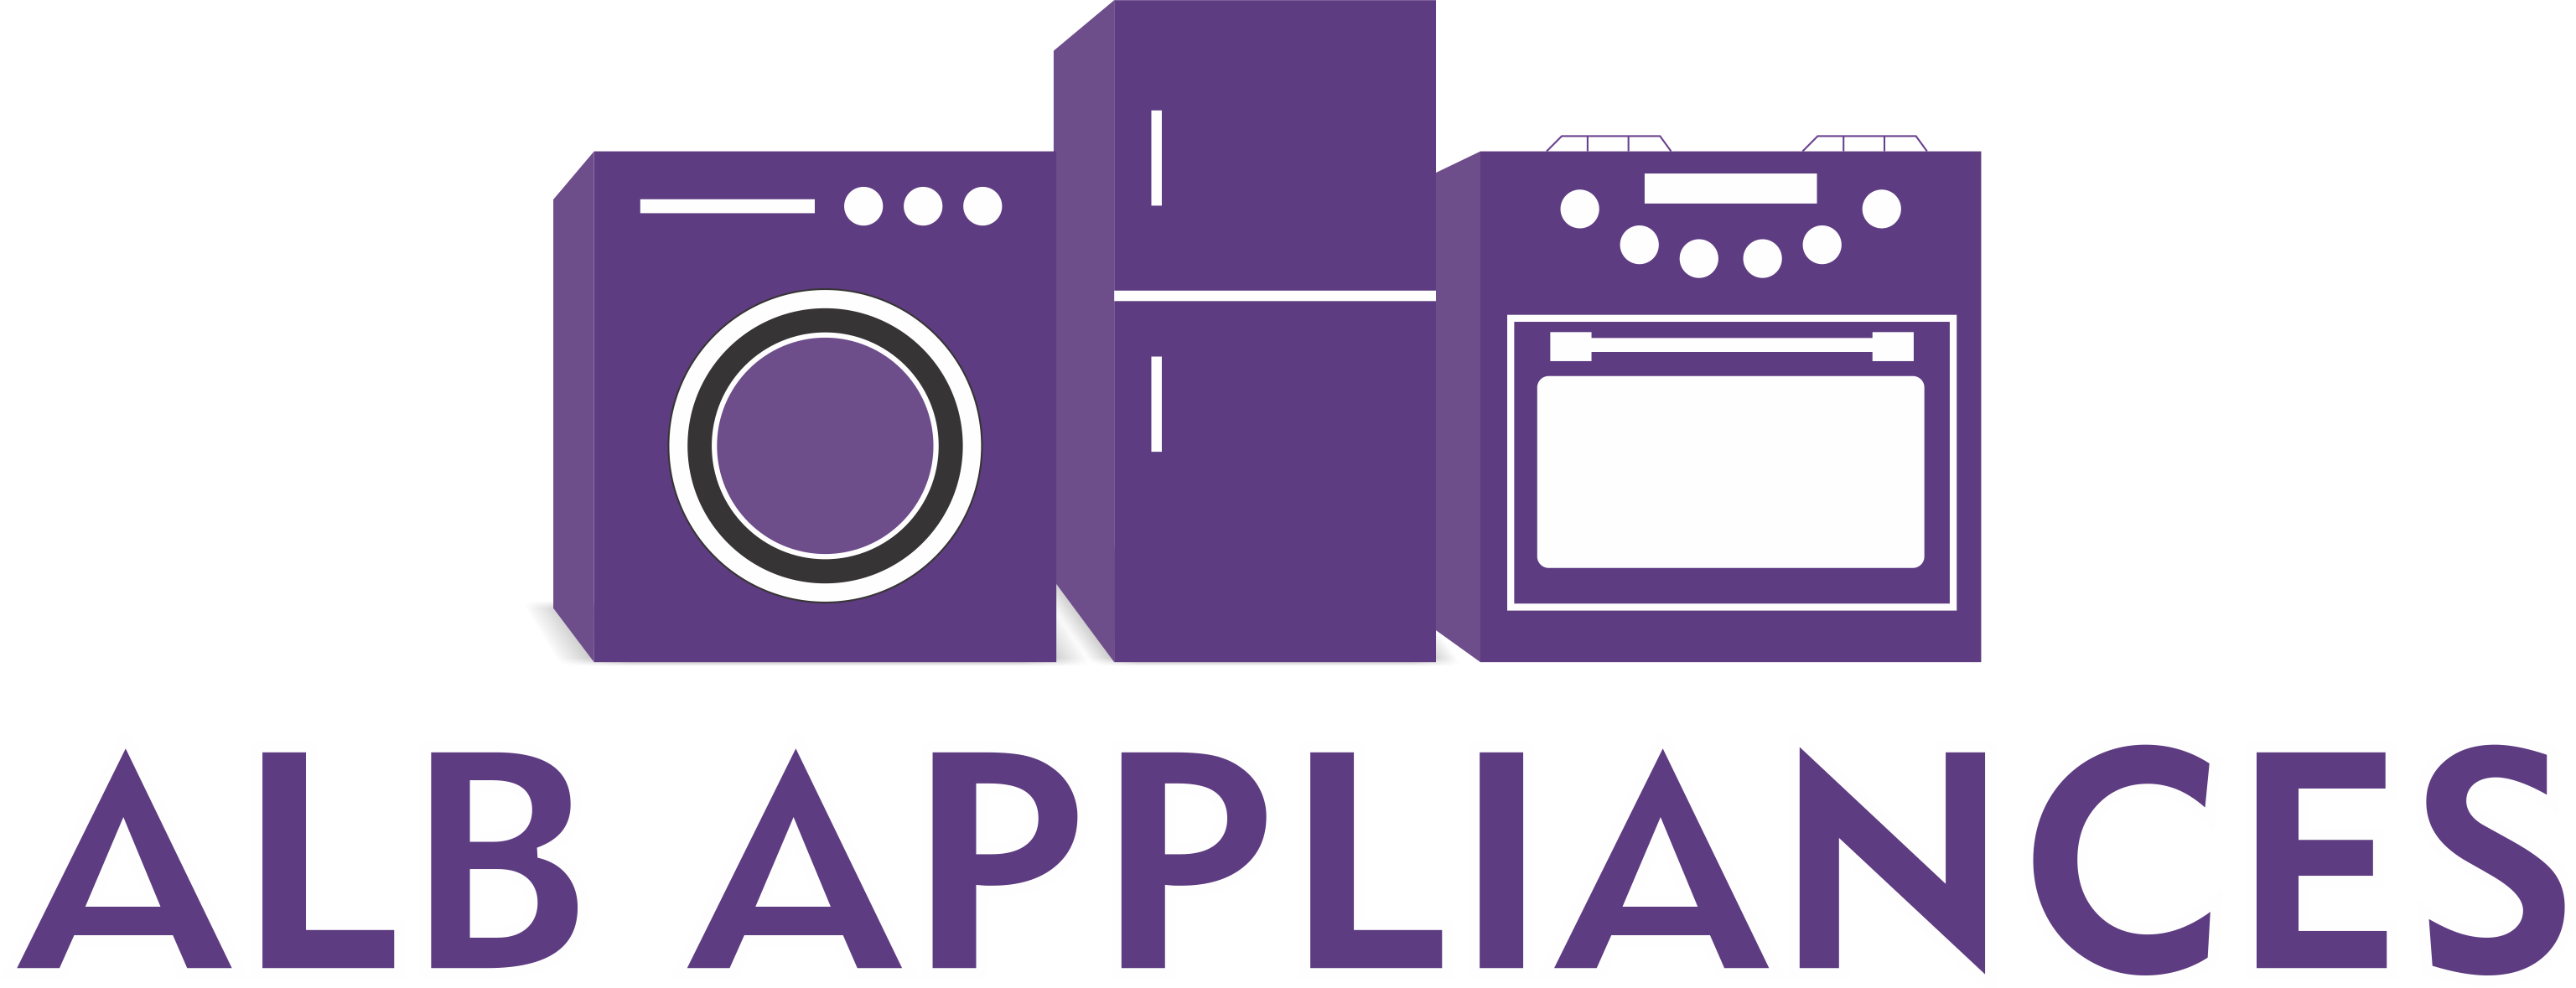 Camarillo Appliance Repair Alb Appliances